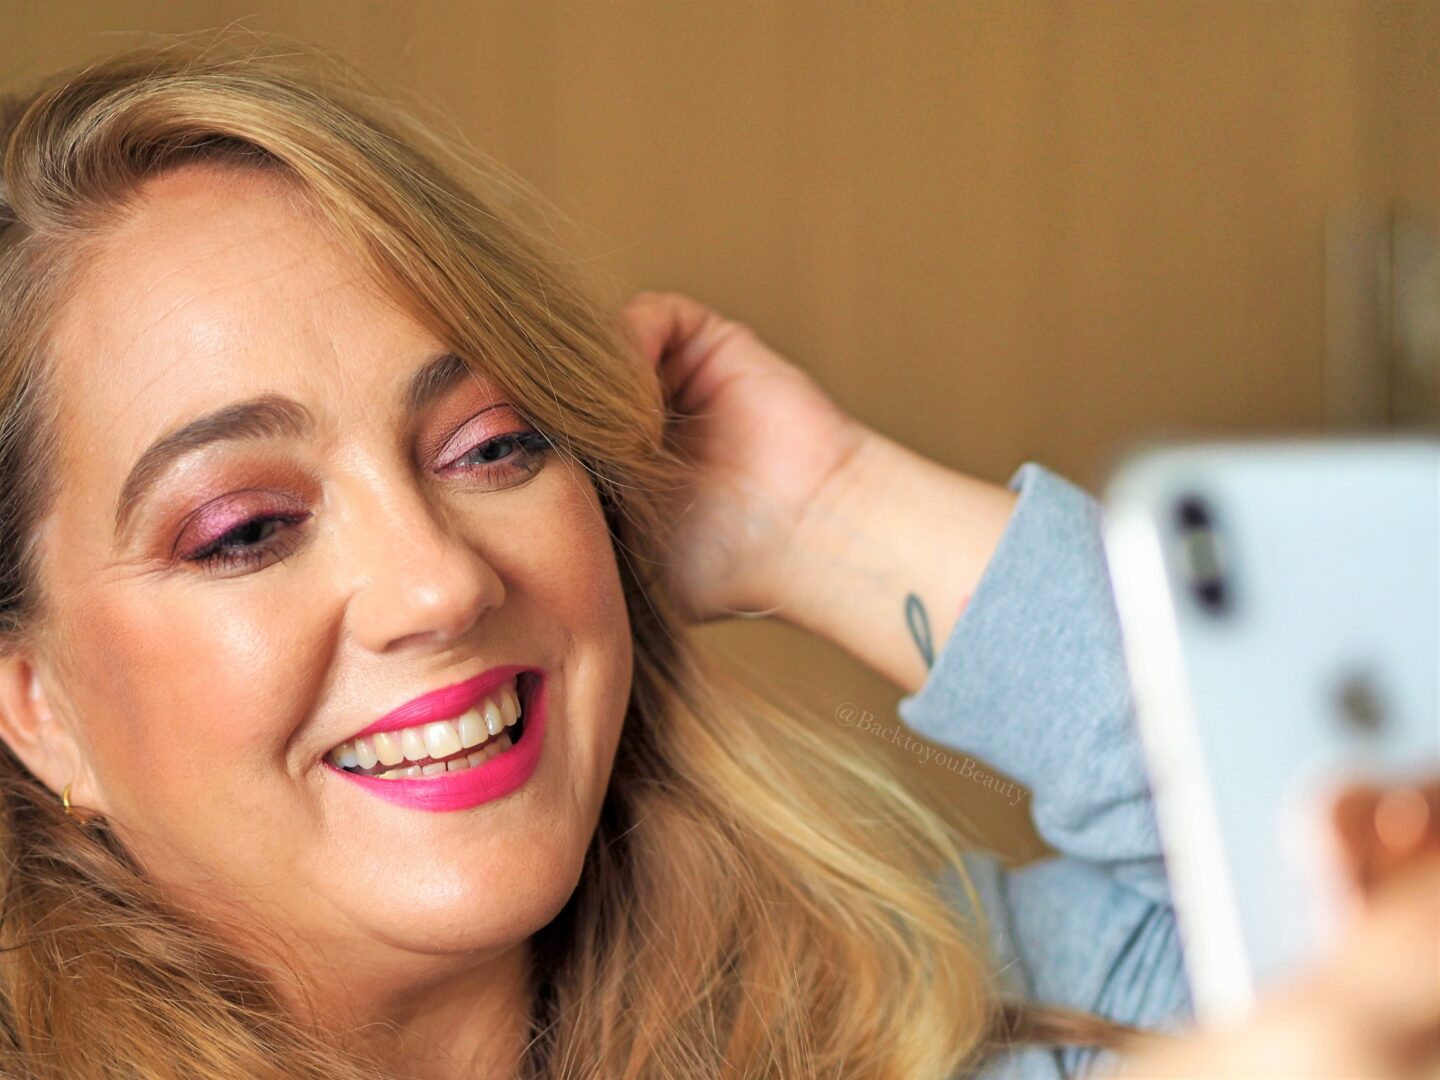 Back to you beauty in full face of Too Faced smiling